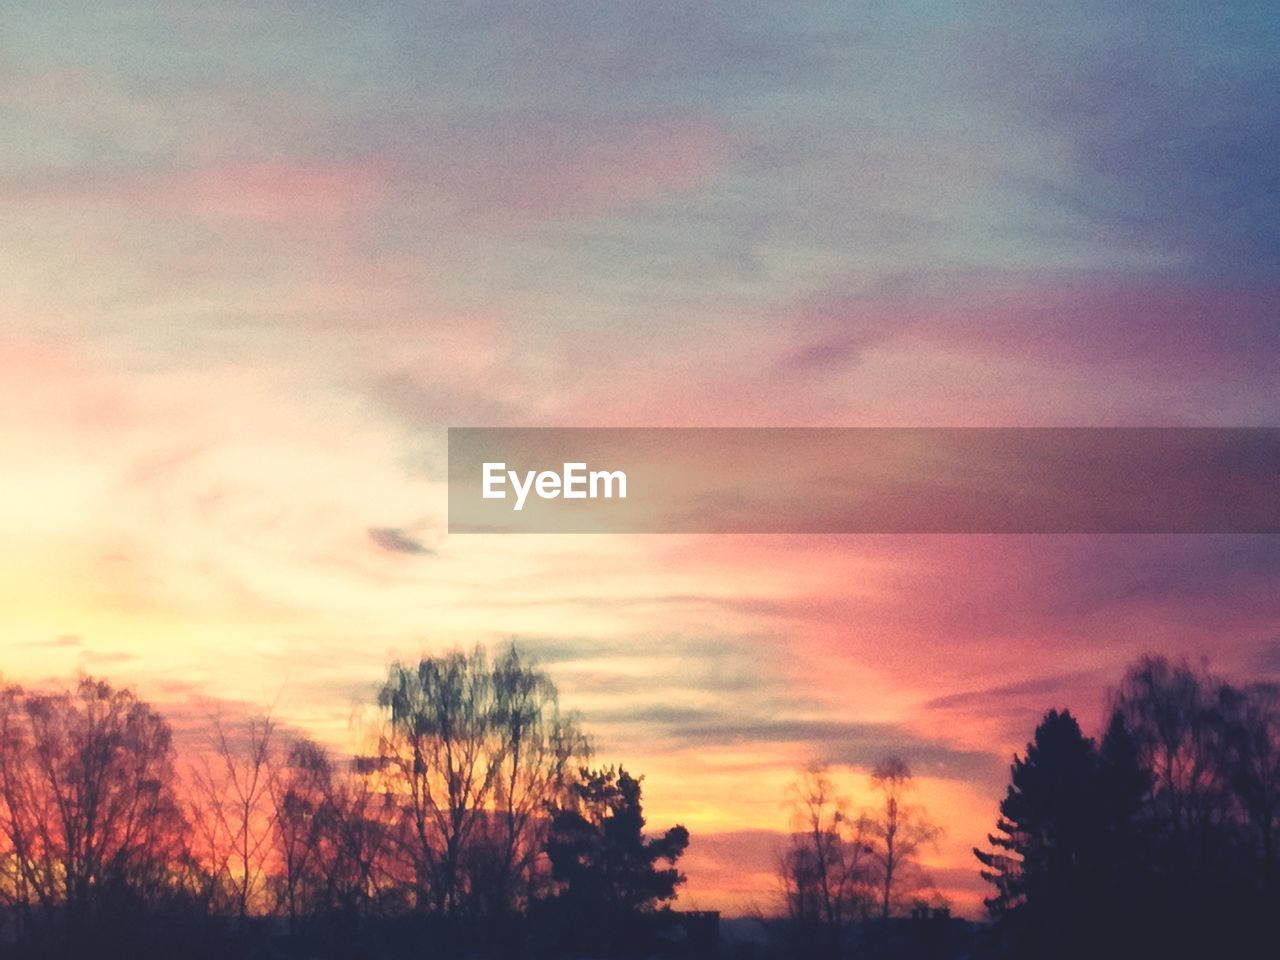 sky, cloud - sky, sunset, beauty in nature, scenics - nature, tranquility, tree, tranquil scene, orange color, silhouette, no people, plant, low angle view, nature, idyllic, outdoors, dramatic sky, non-urban scene, dusk, romantic sky